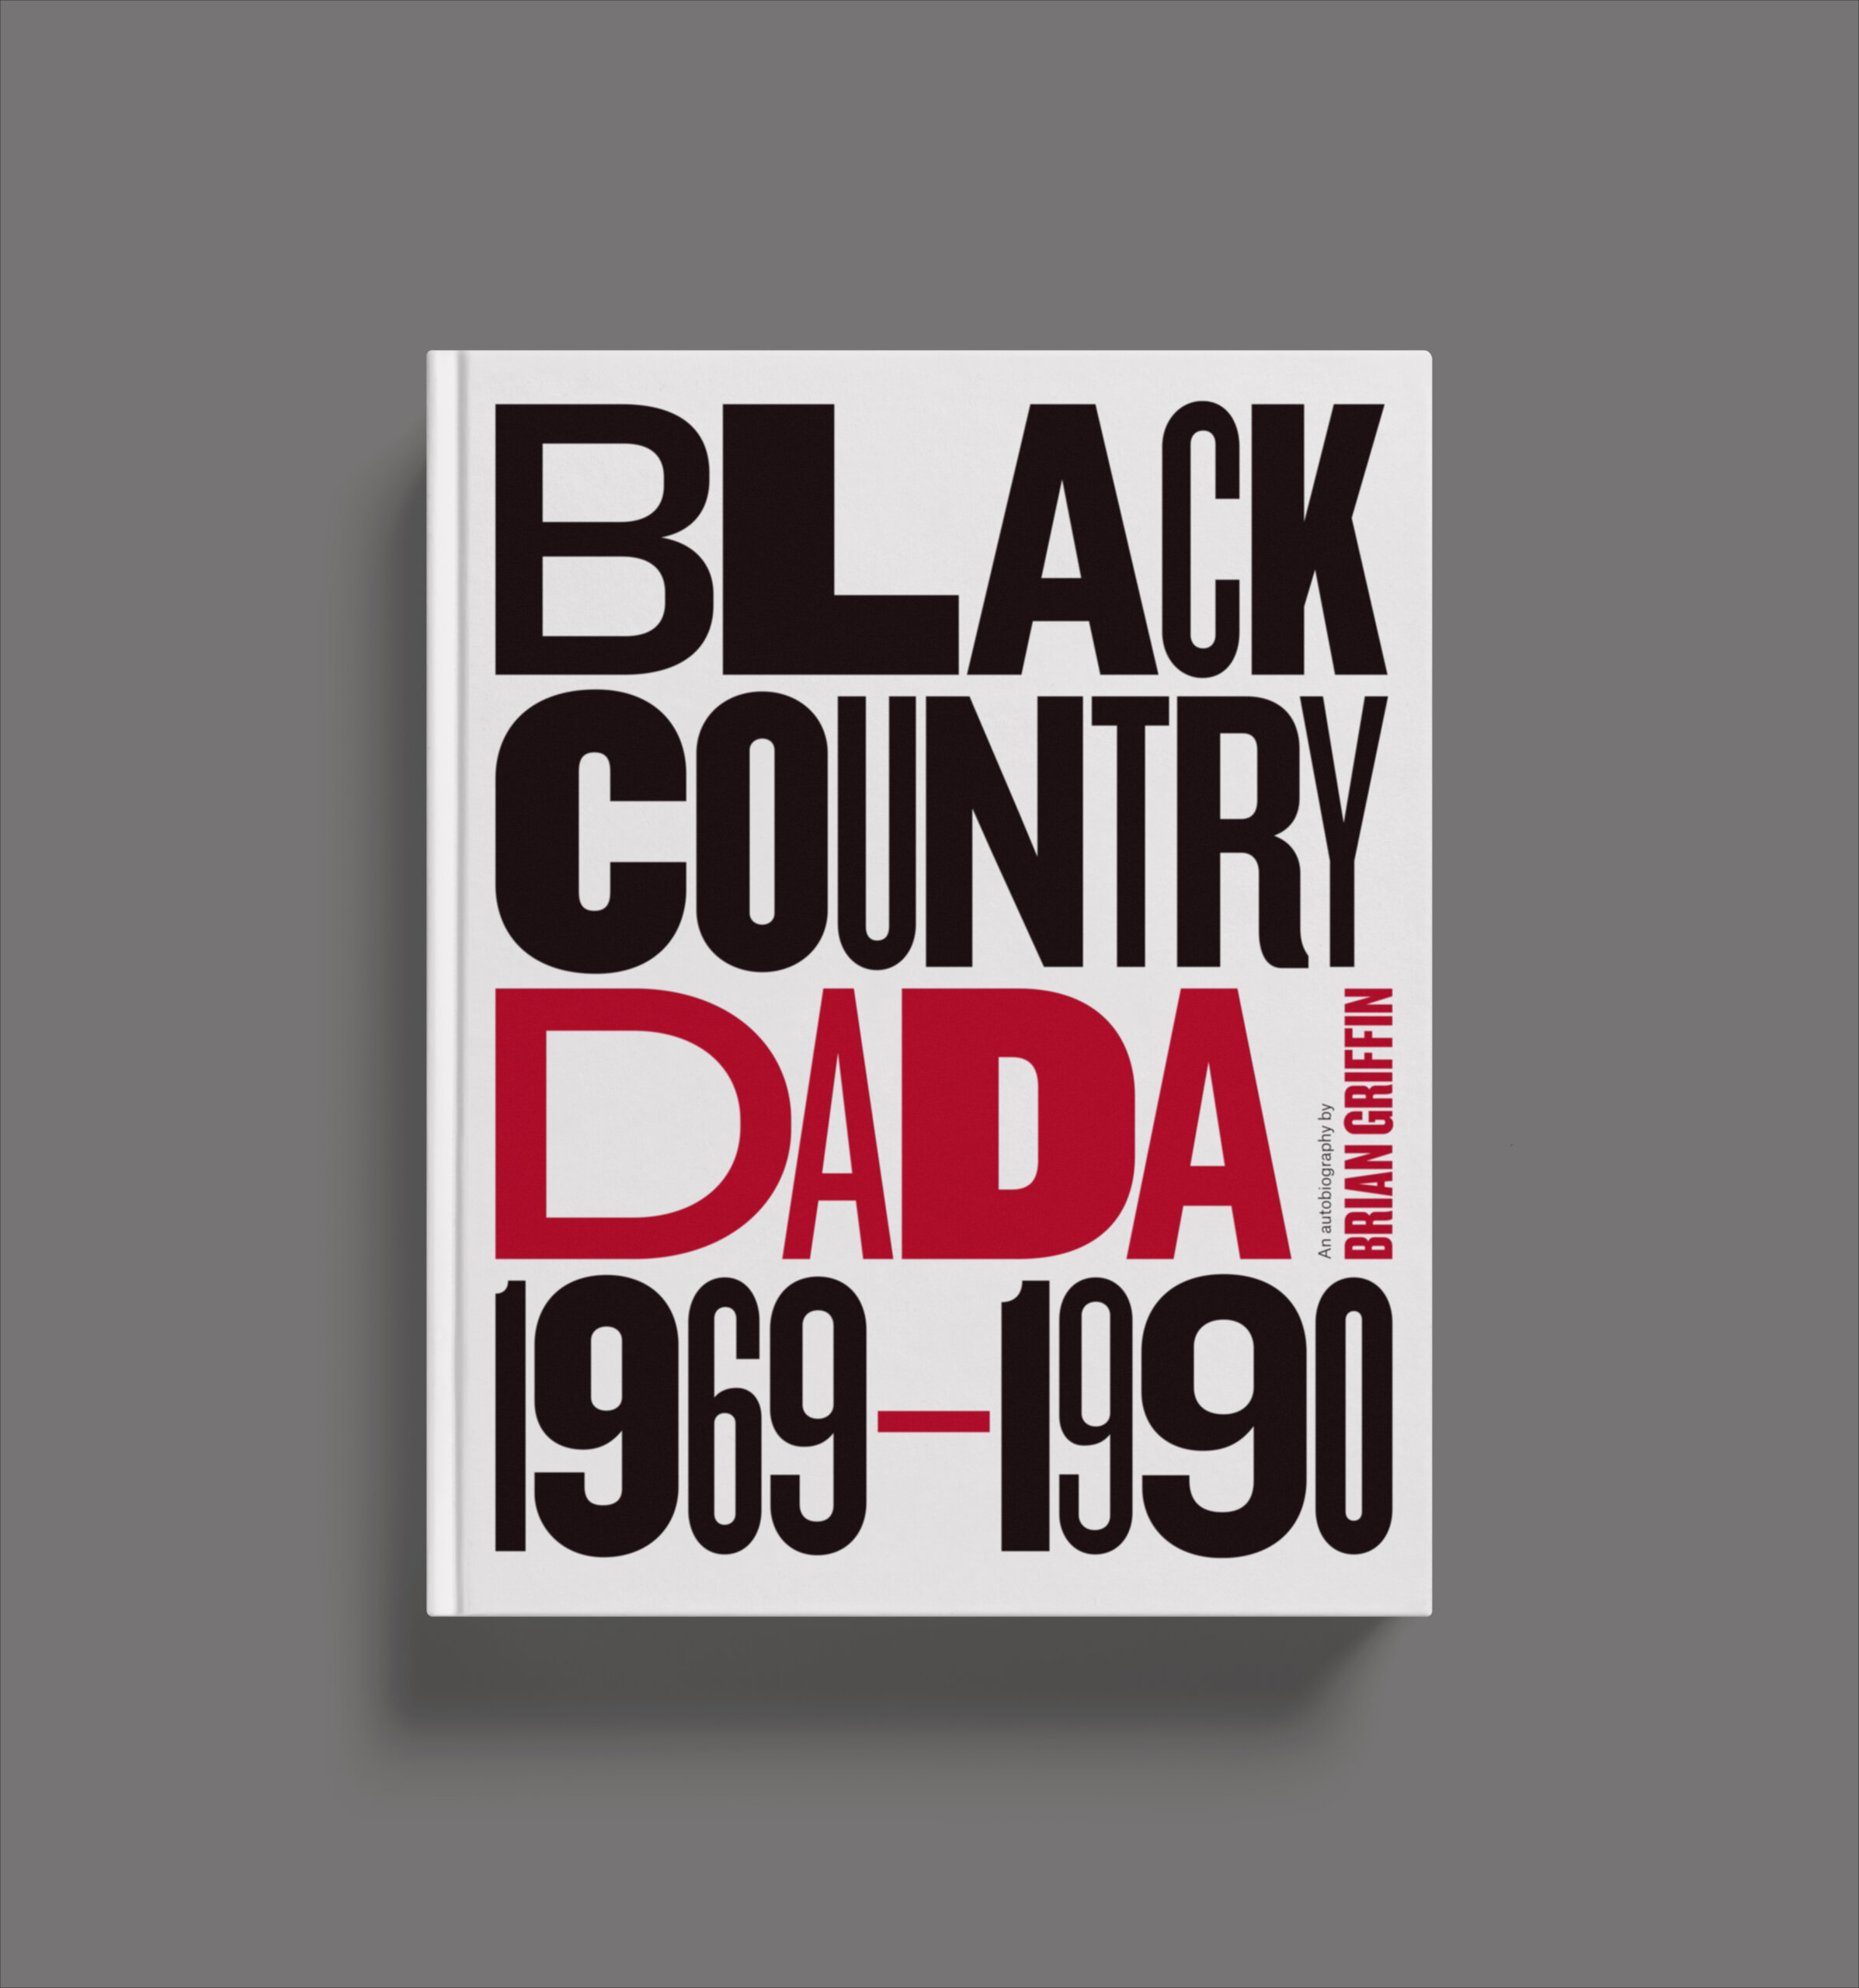 Brian Griffin Black Country Dada photography book